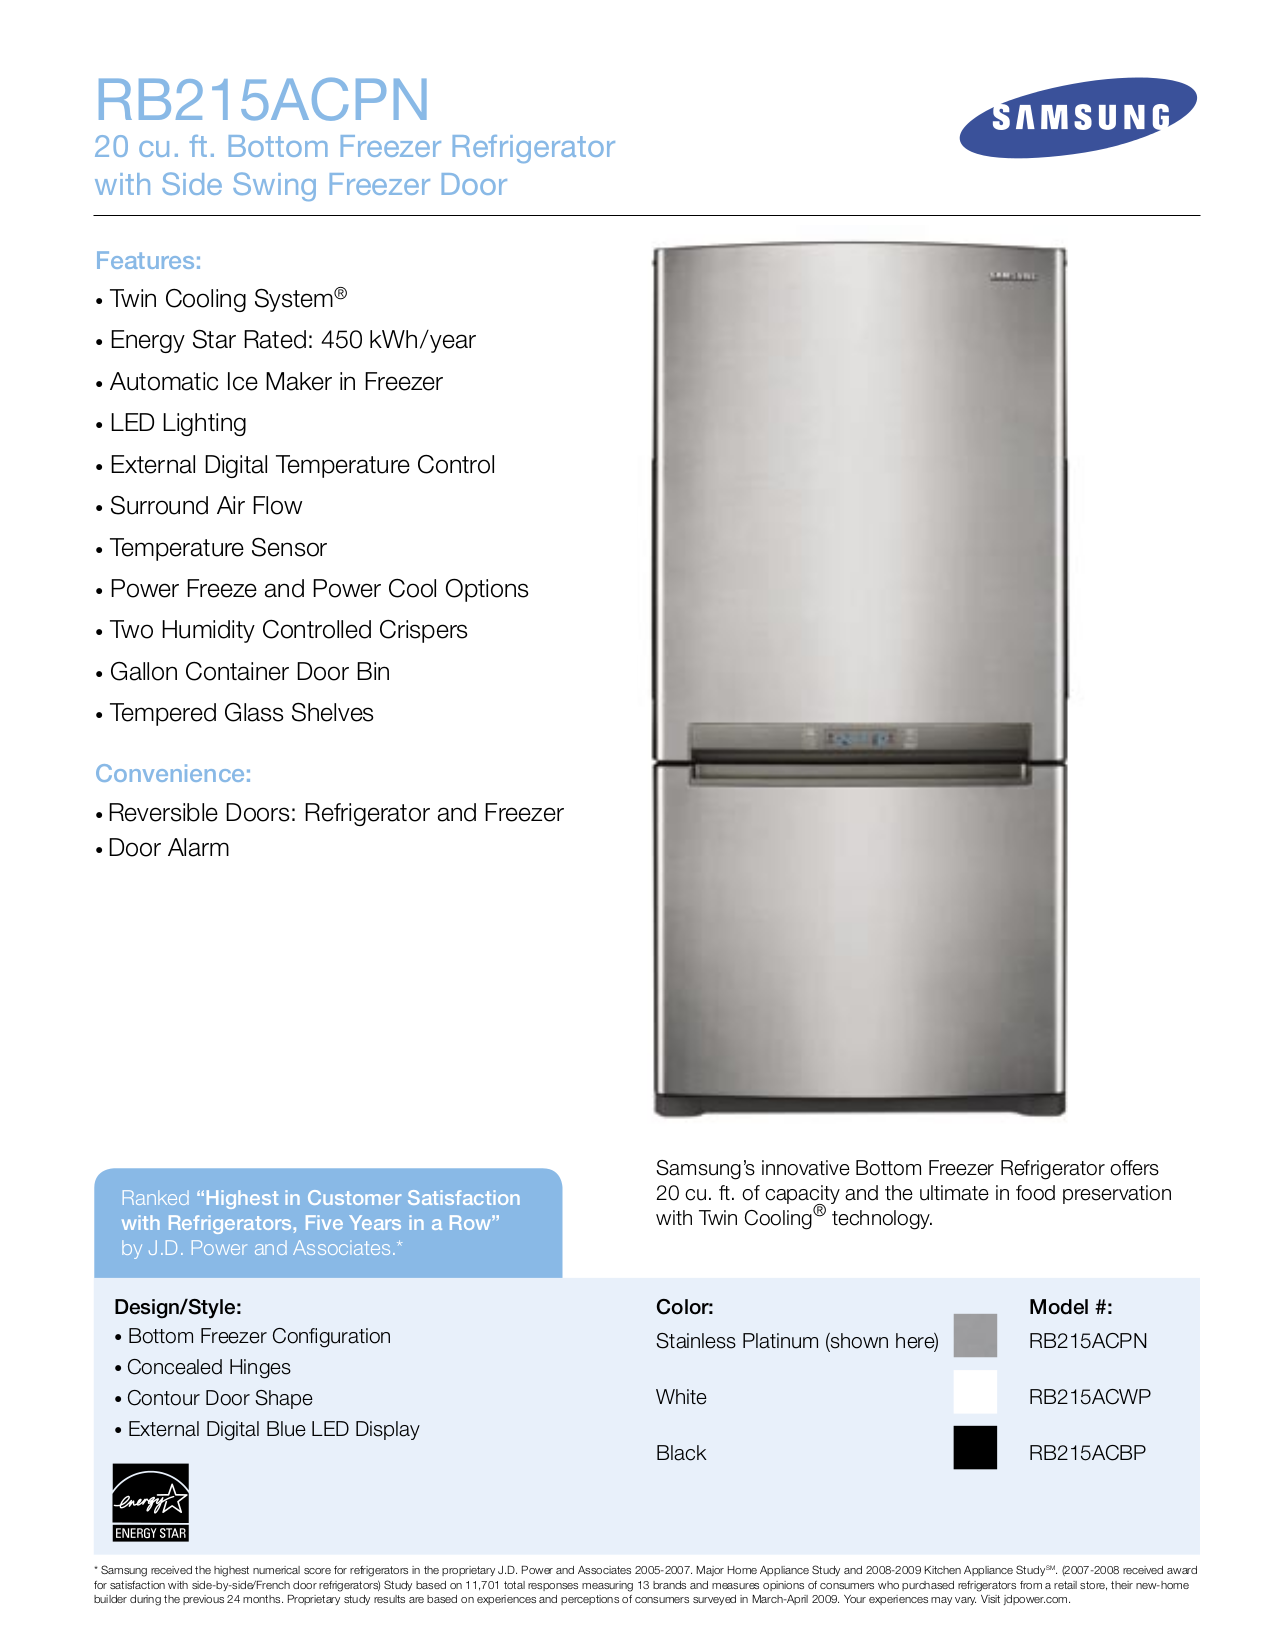 pdf for Samsung Refrigerator RB215ACBP manual